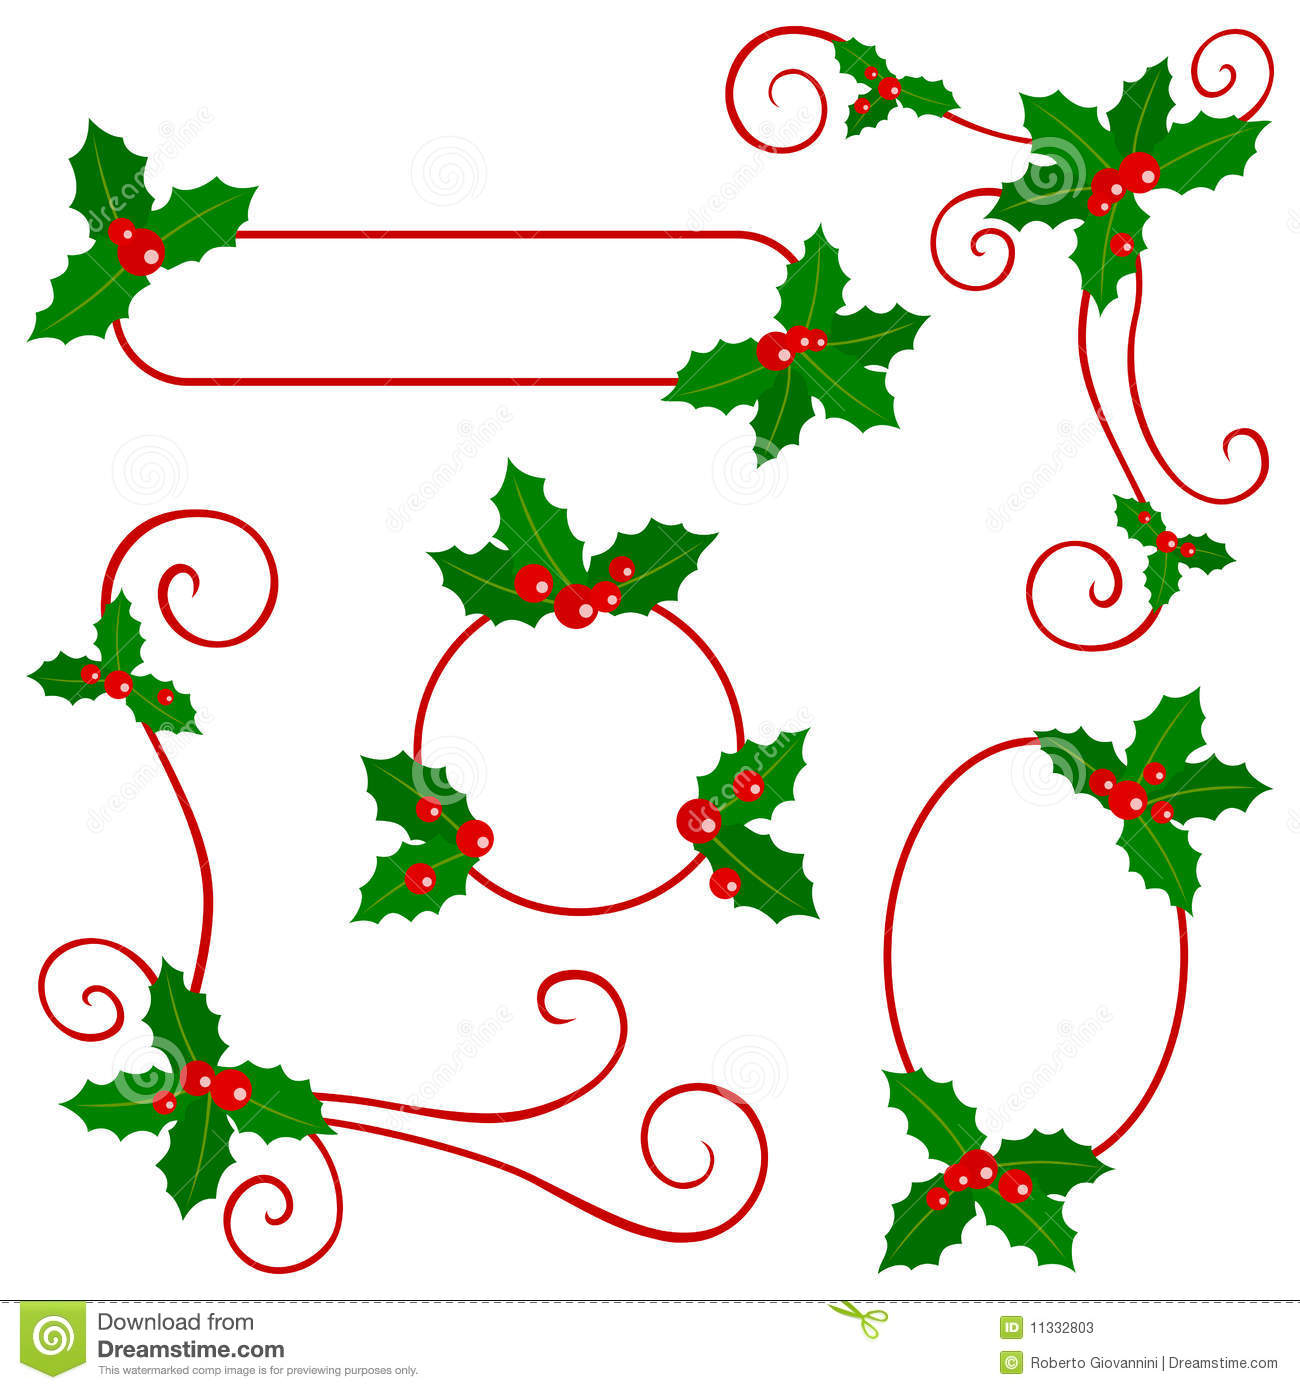 clip art holly leaves black and white - photo #45